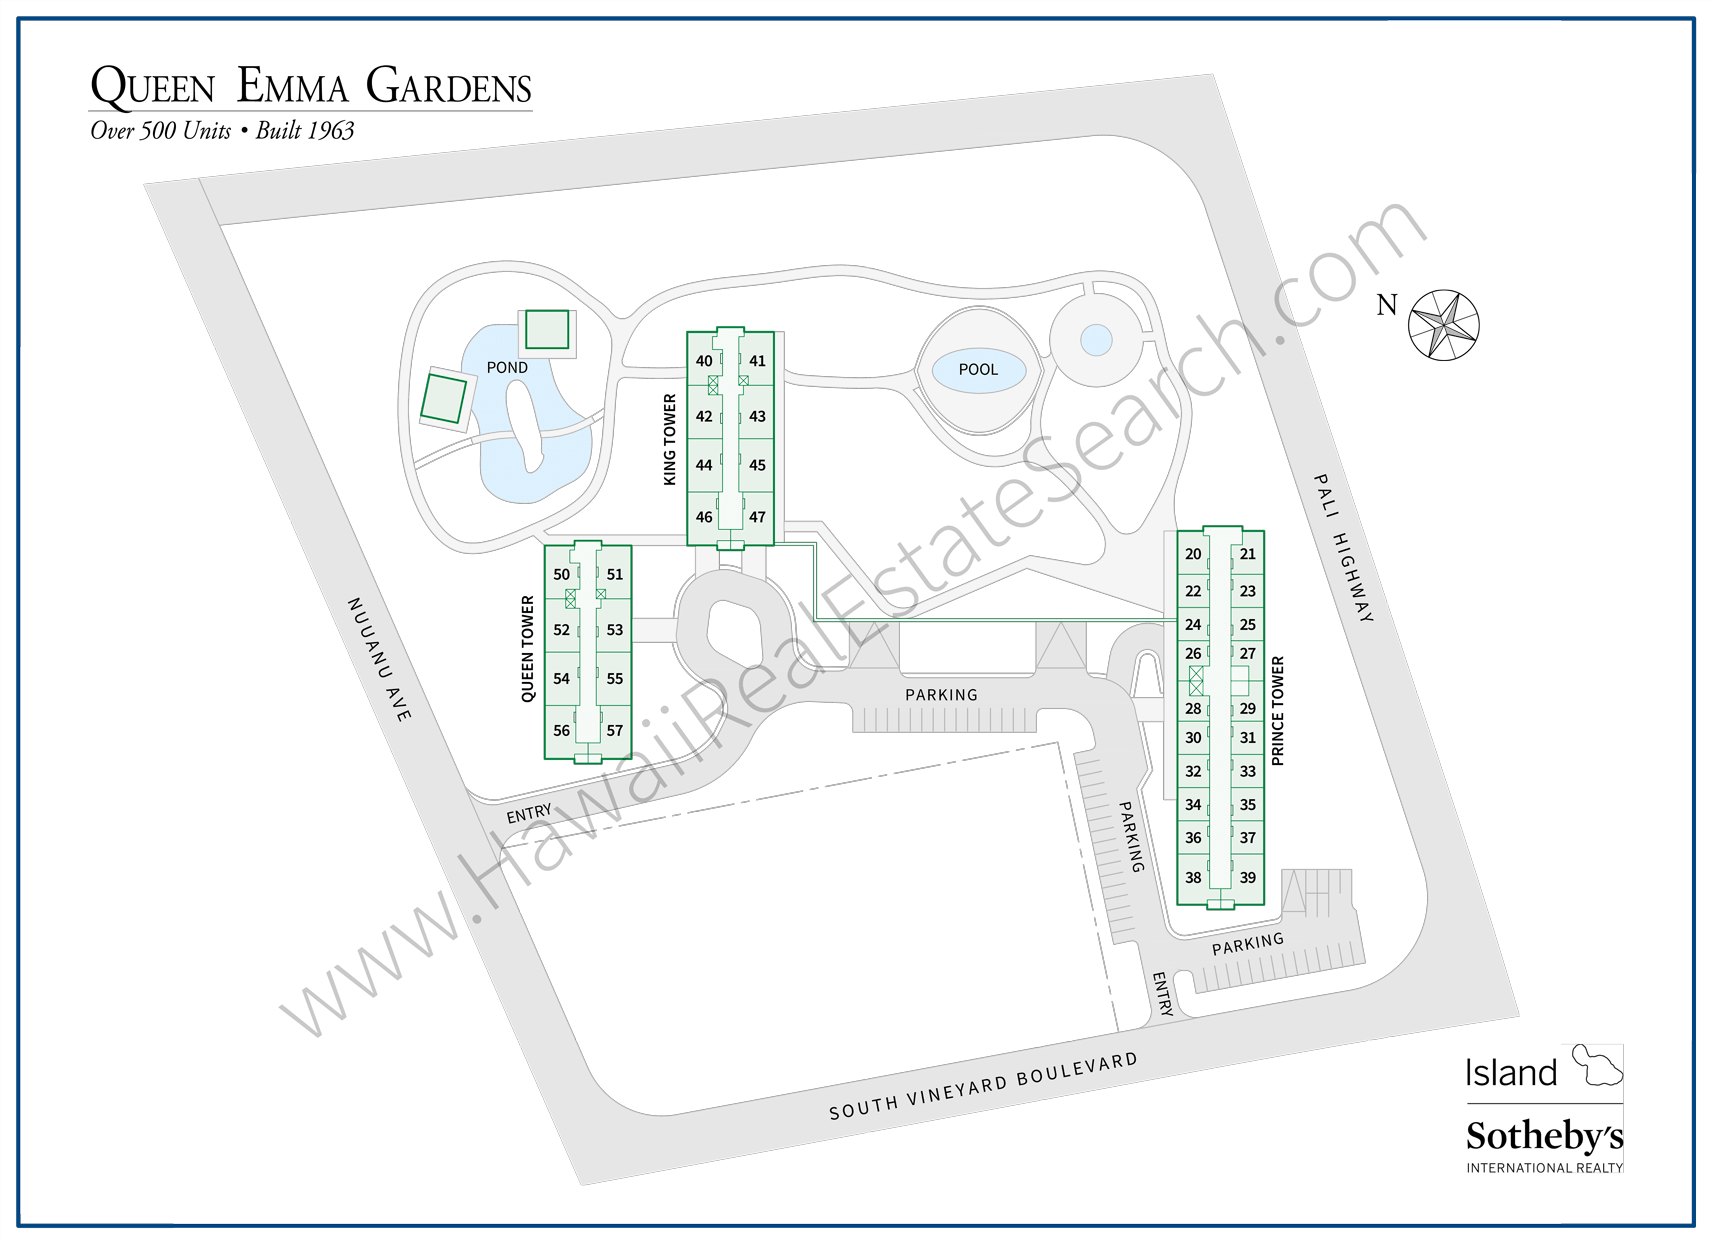 Queen Emma Gardens Map